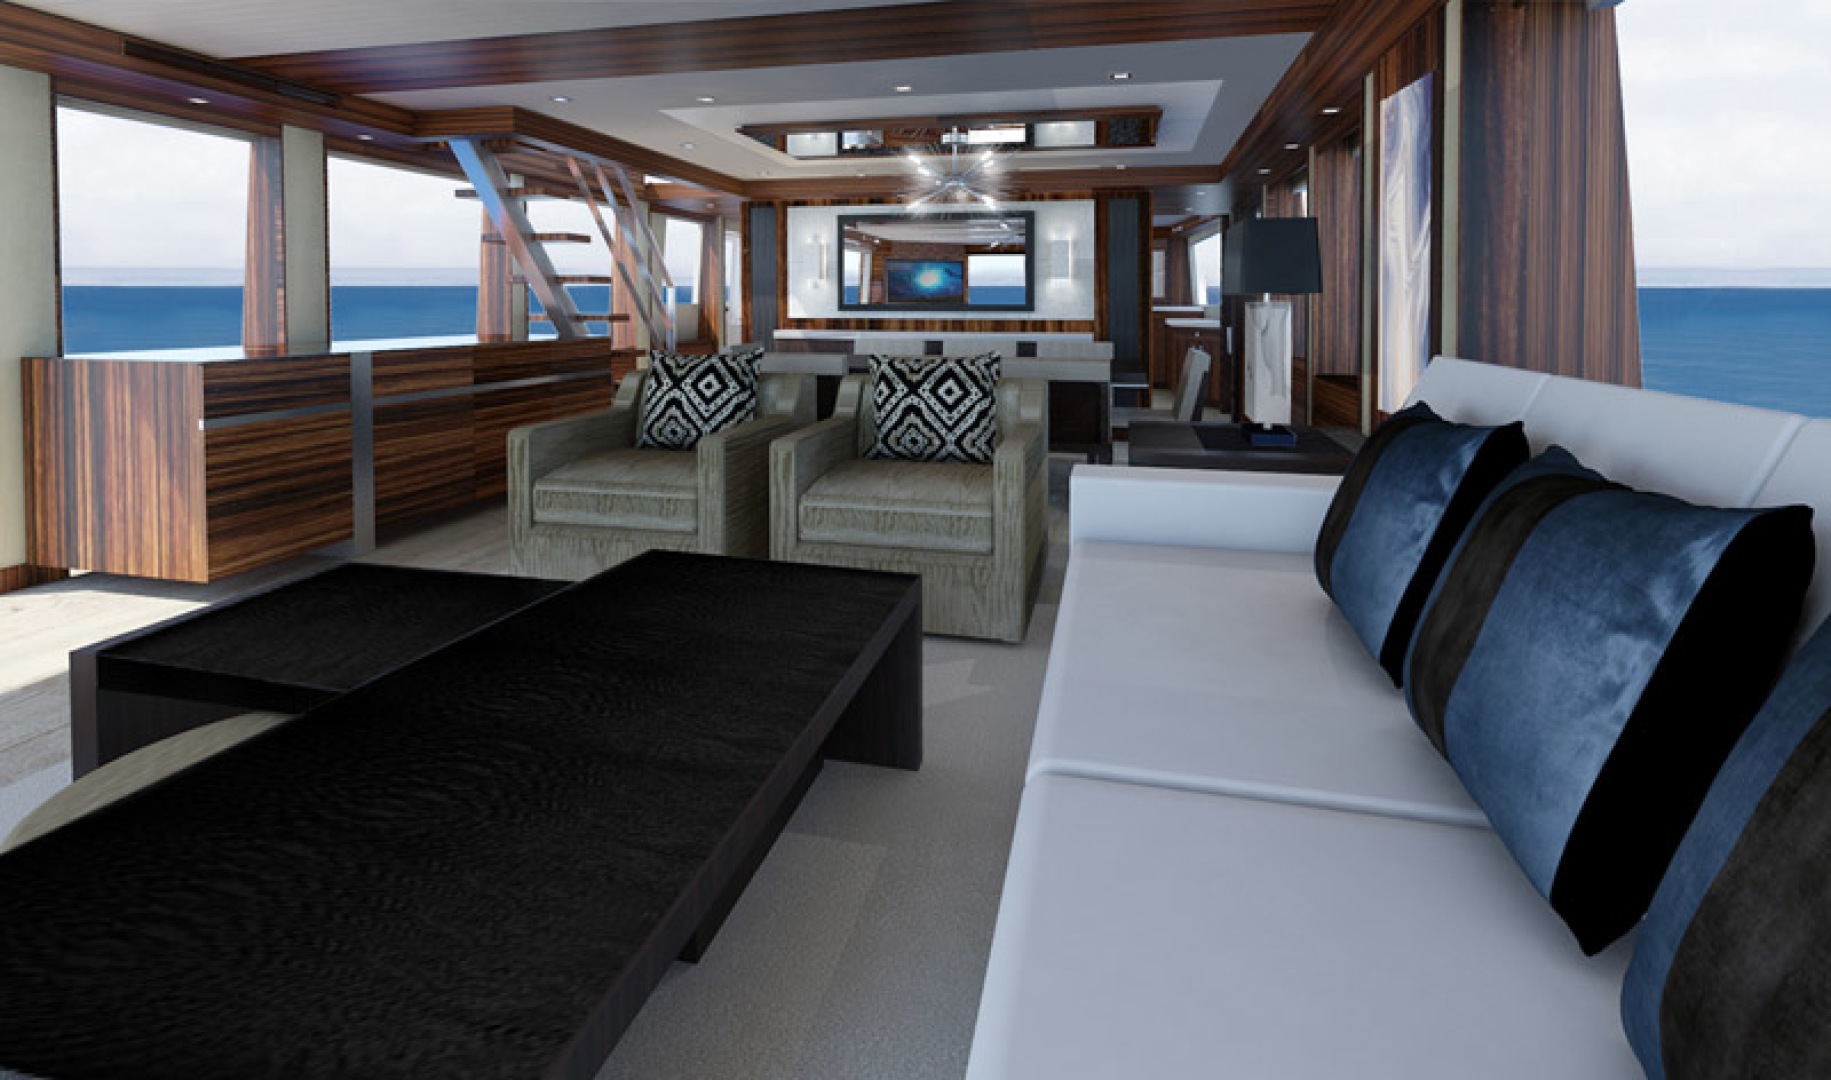 Hatteras-M90 Panacera 2020 -Cape May-New Jersey-United States-Main Deck Interior-1084086 | Thumbnail